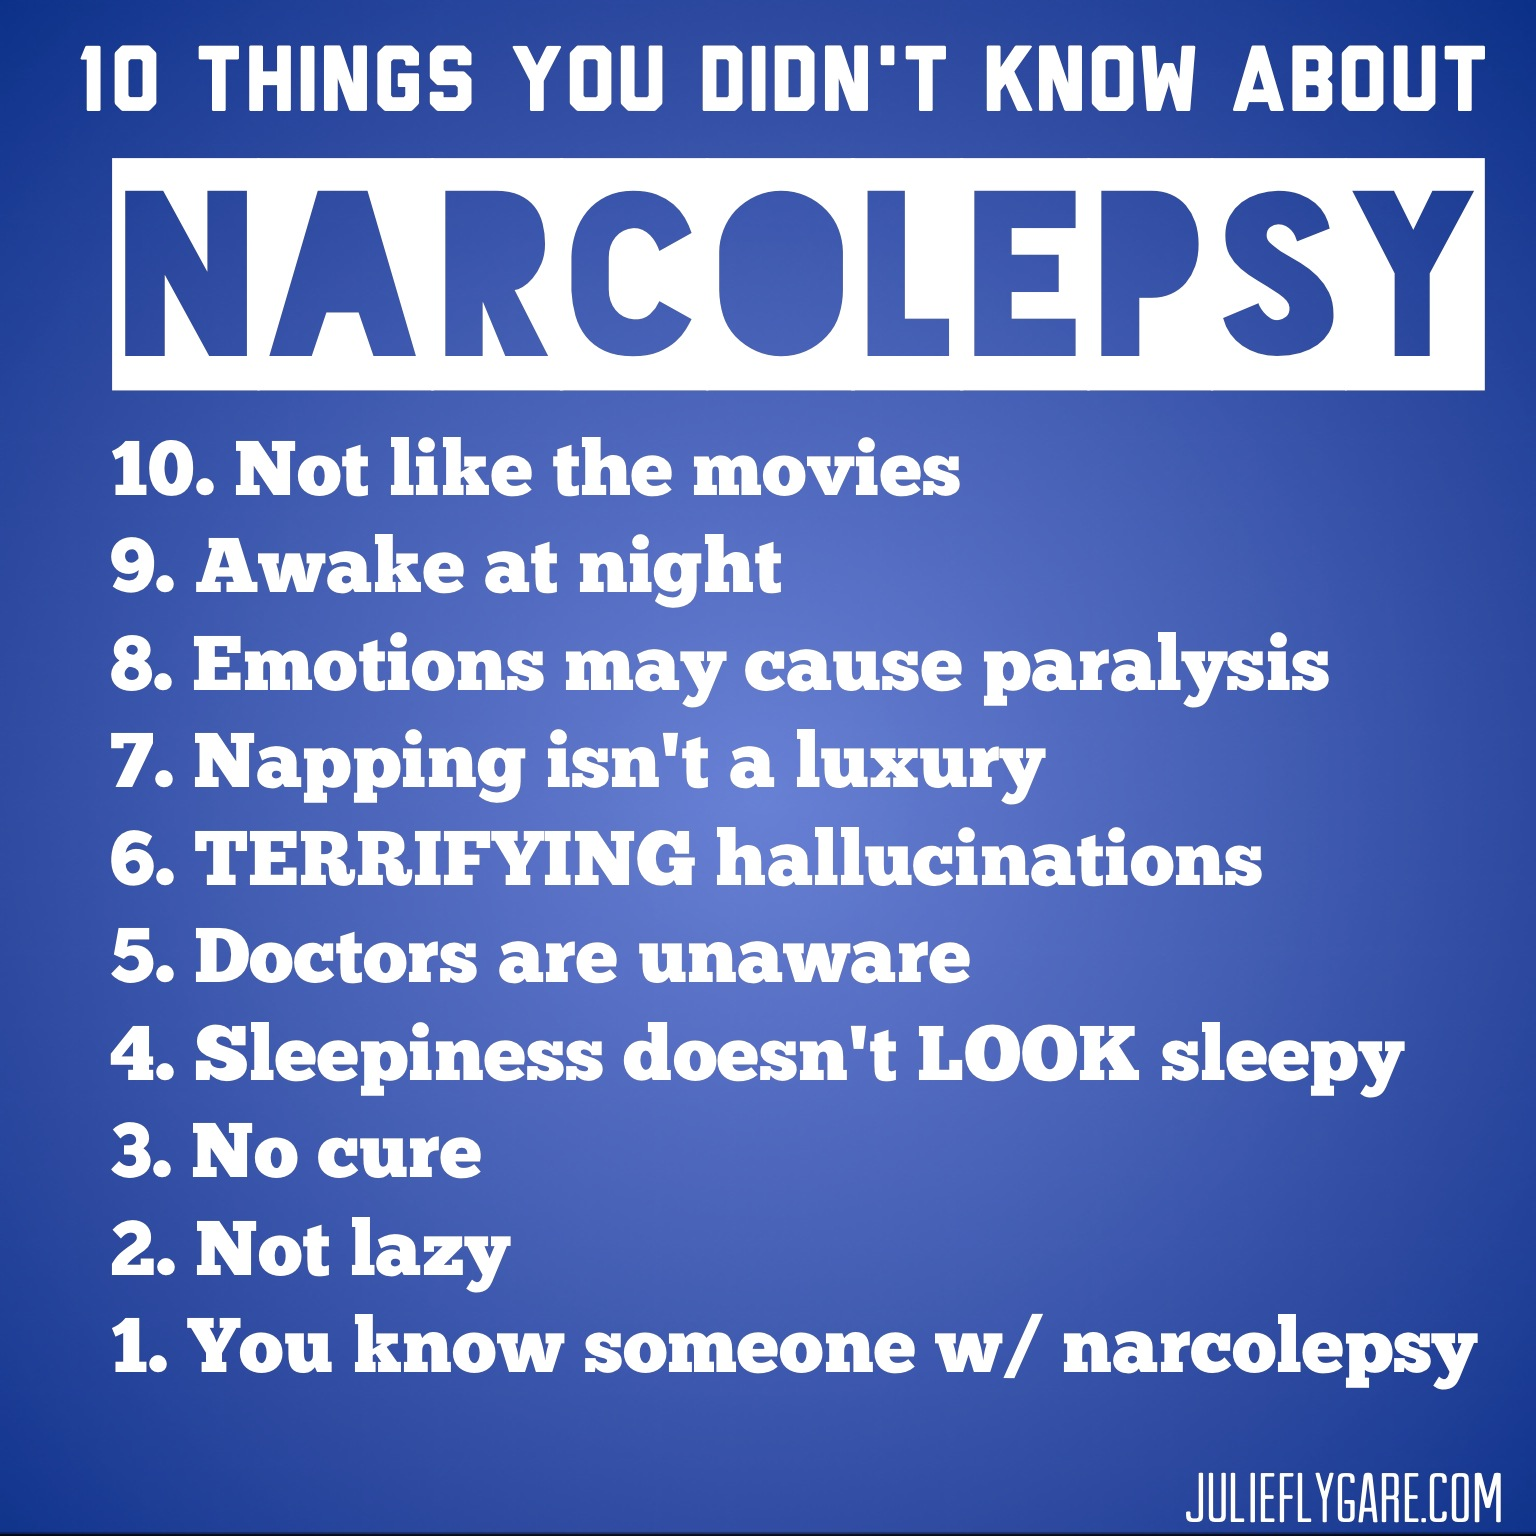 things you didn t know about narcolepsy top ten things you didn t know about narcolepsy list julie flygare narcolepsy spokesperson